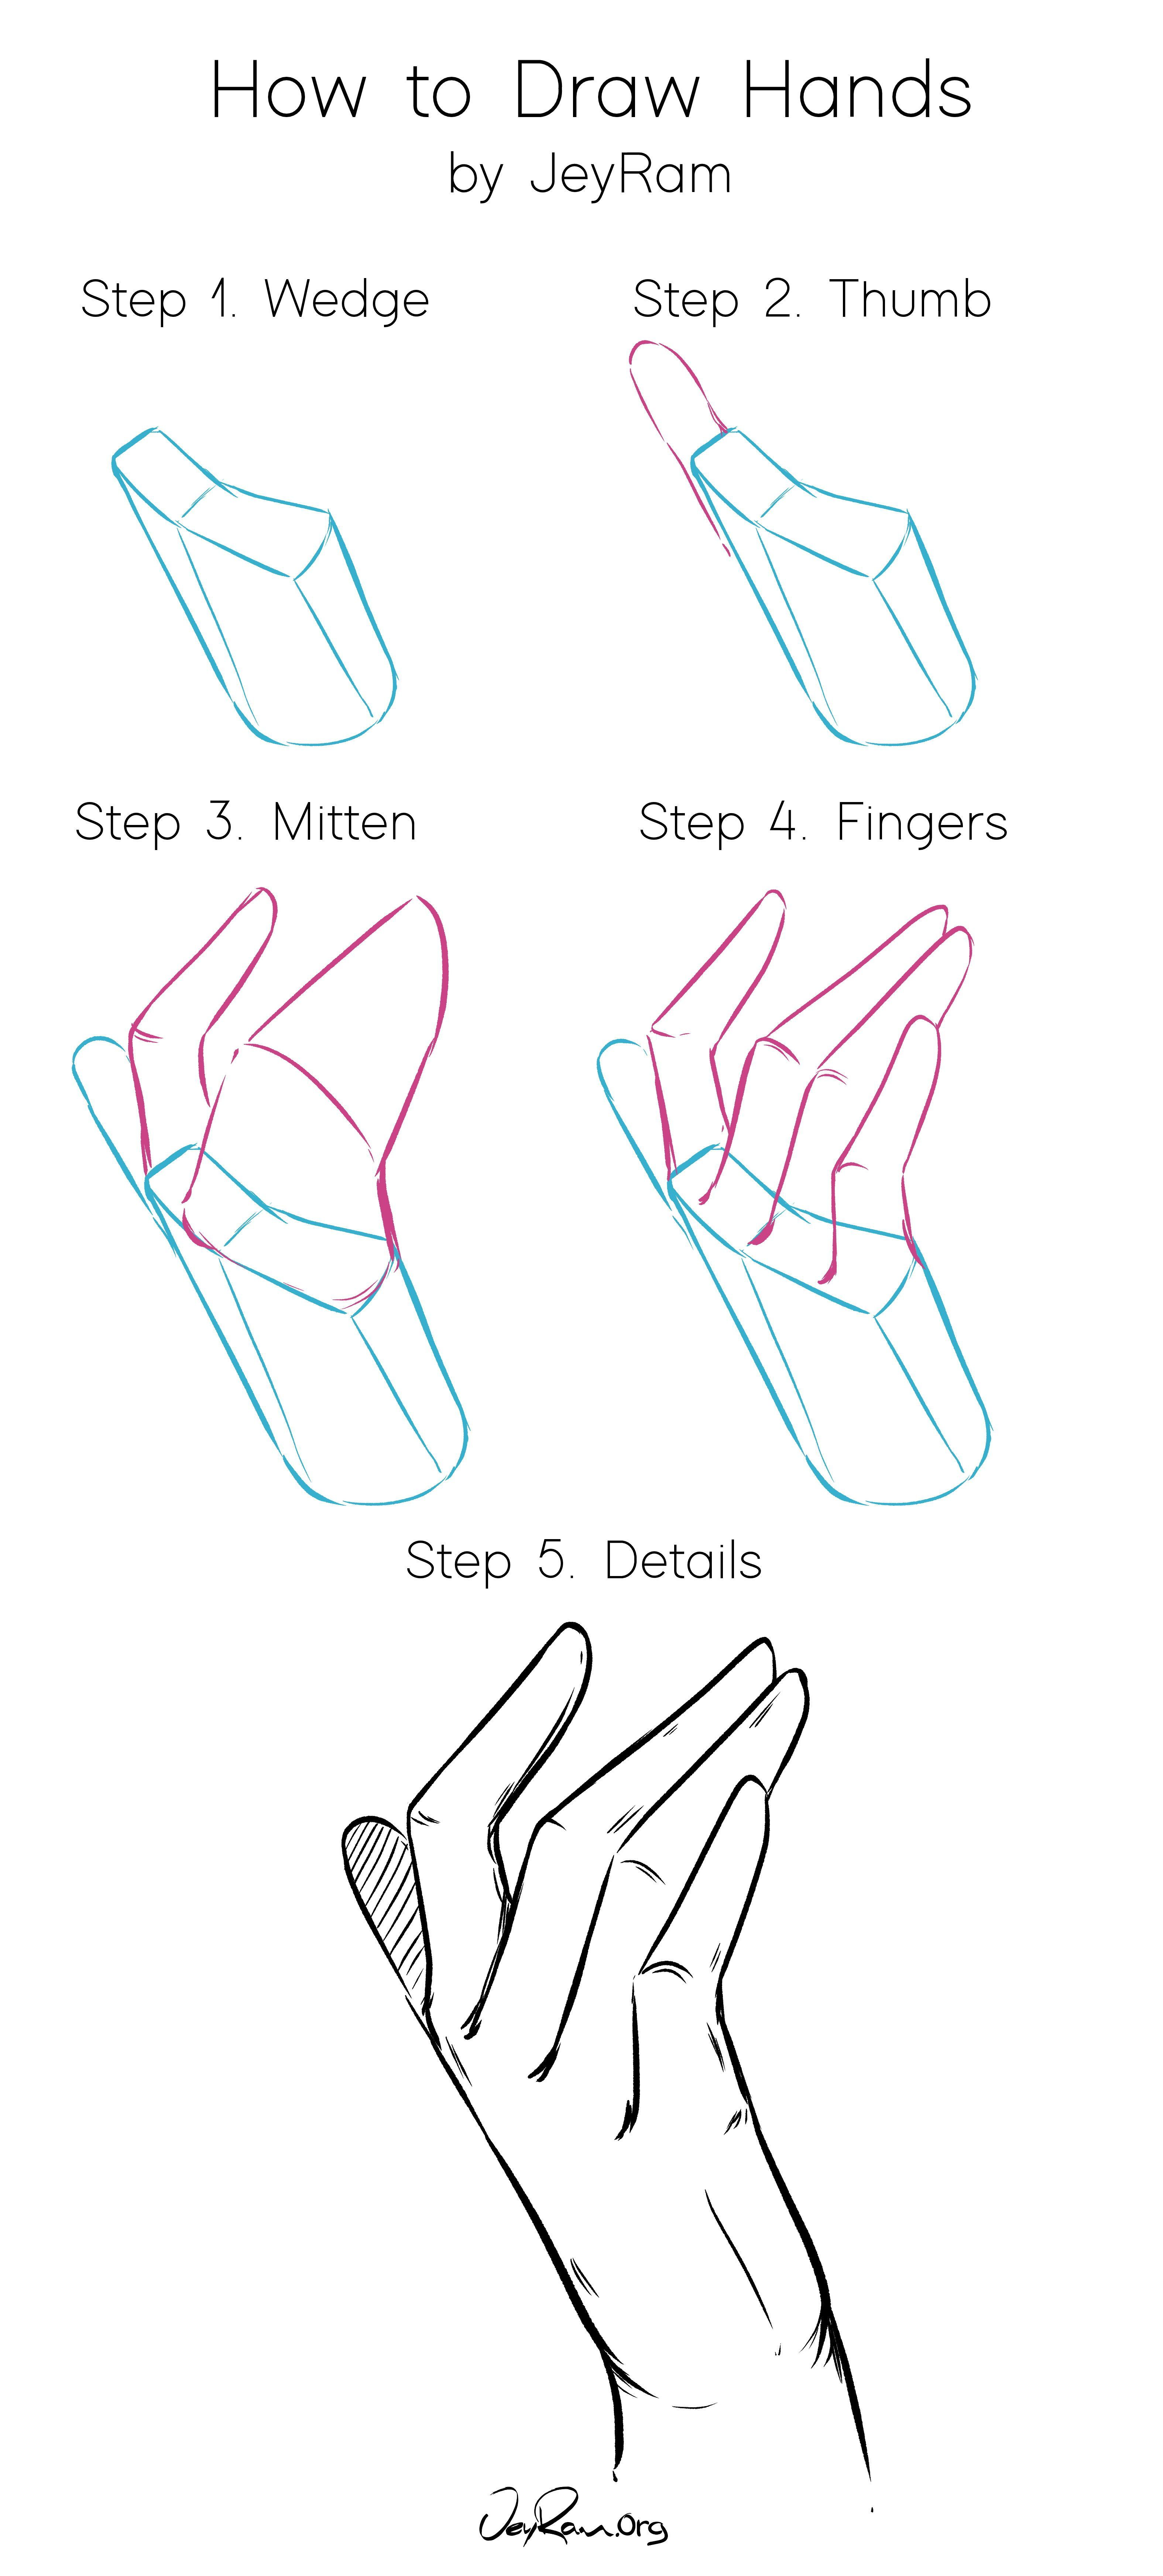 How To Draw Hands Step By Step Tutorial For Beginners In 2020 How To Draw Hands Drawing Anime Hands Free Hand Drawing